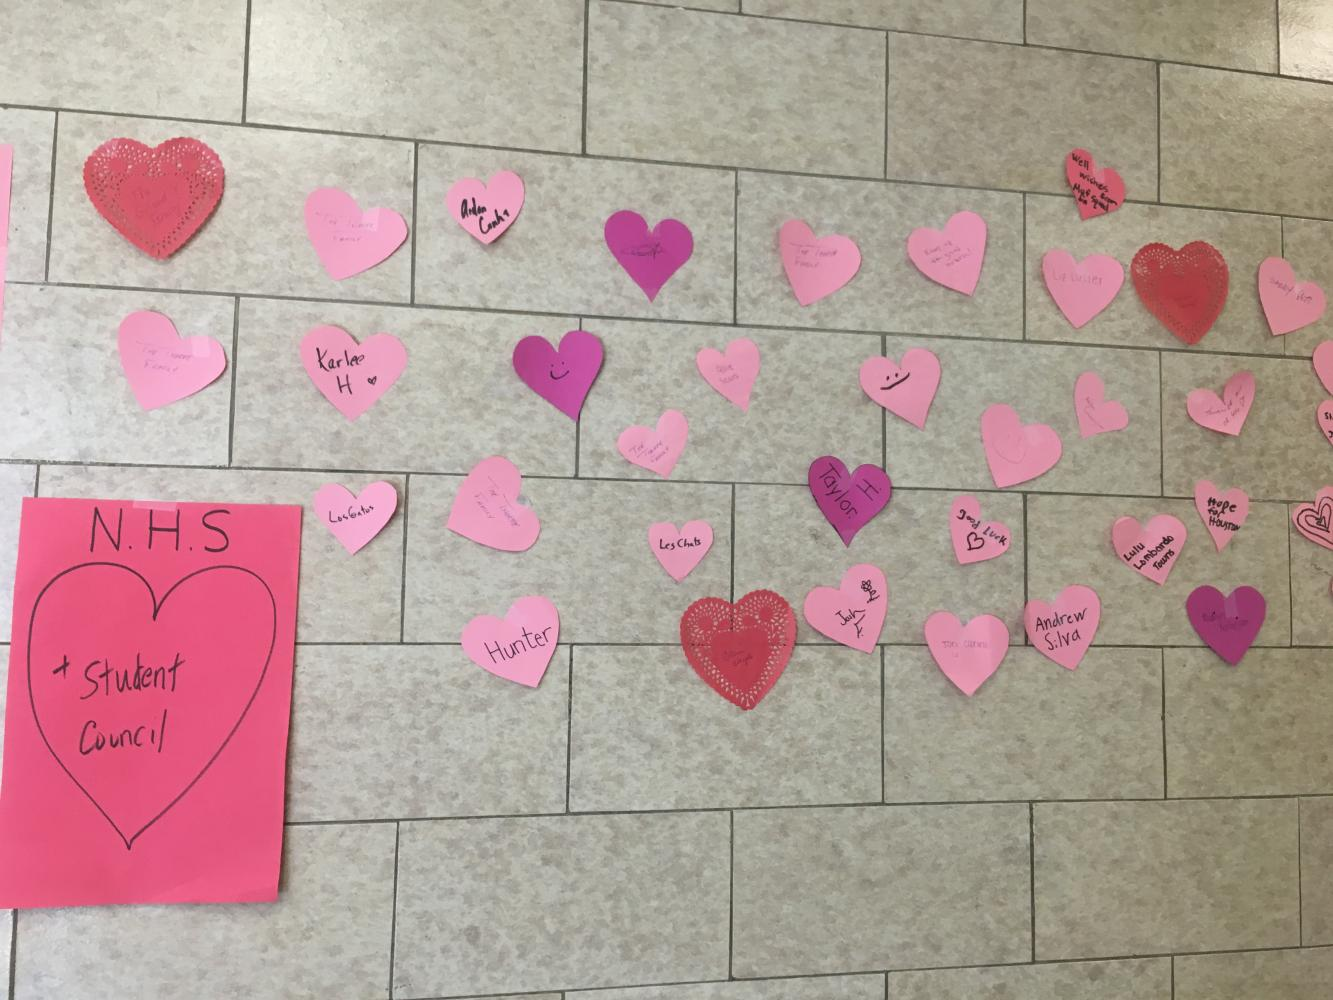 Hearts adorn the wall outside of the school store.